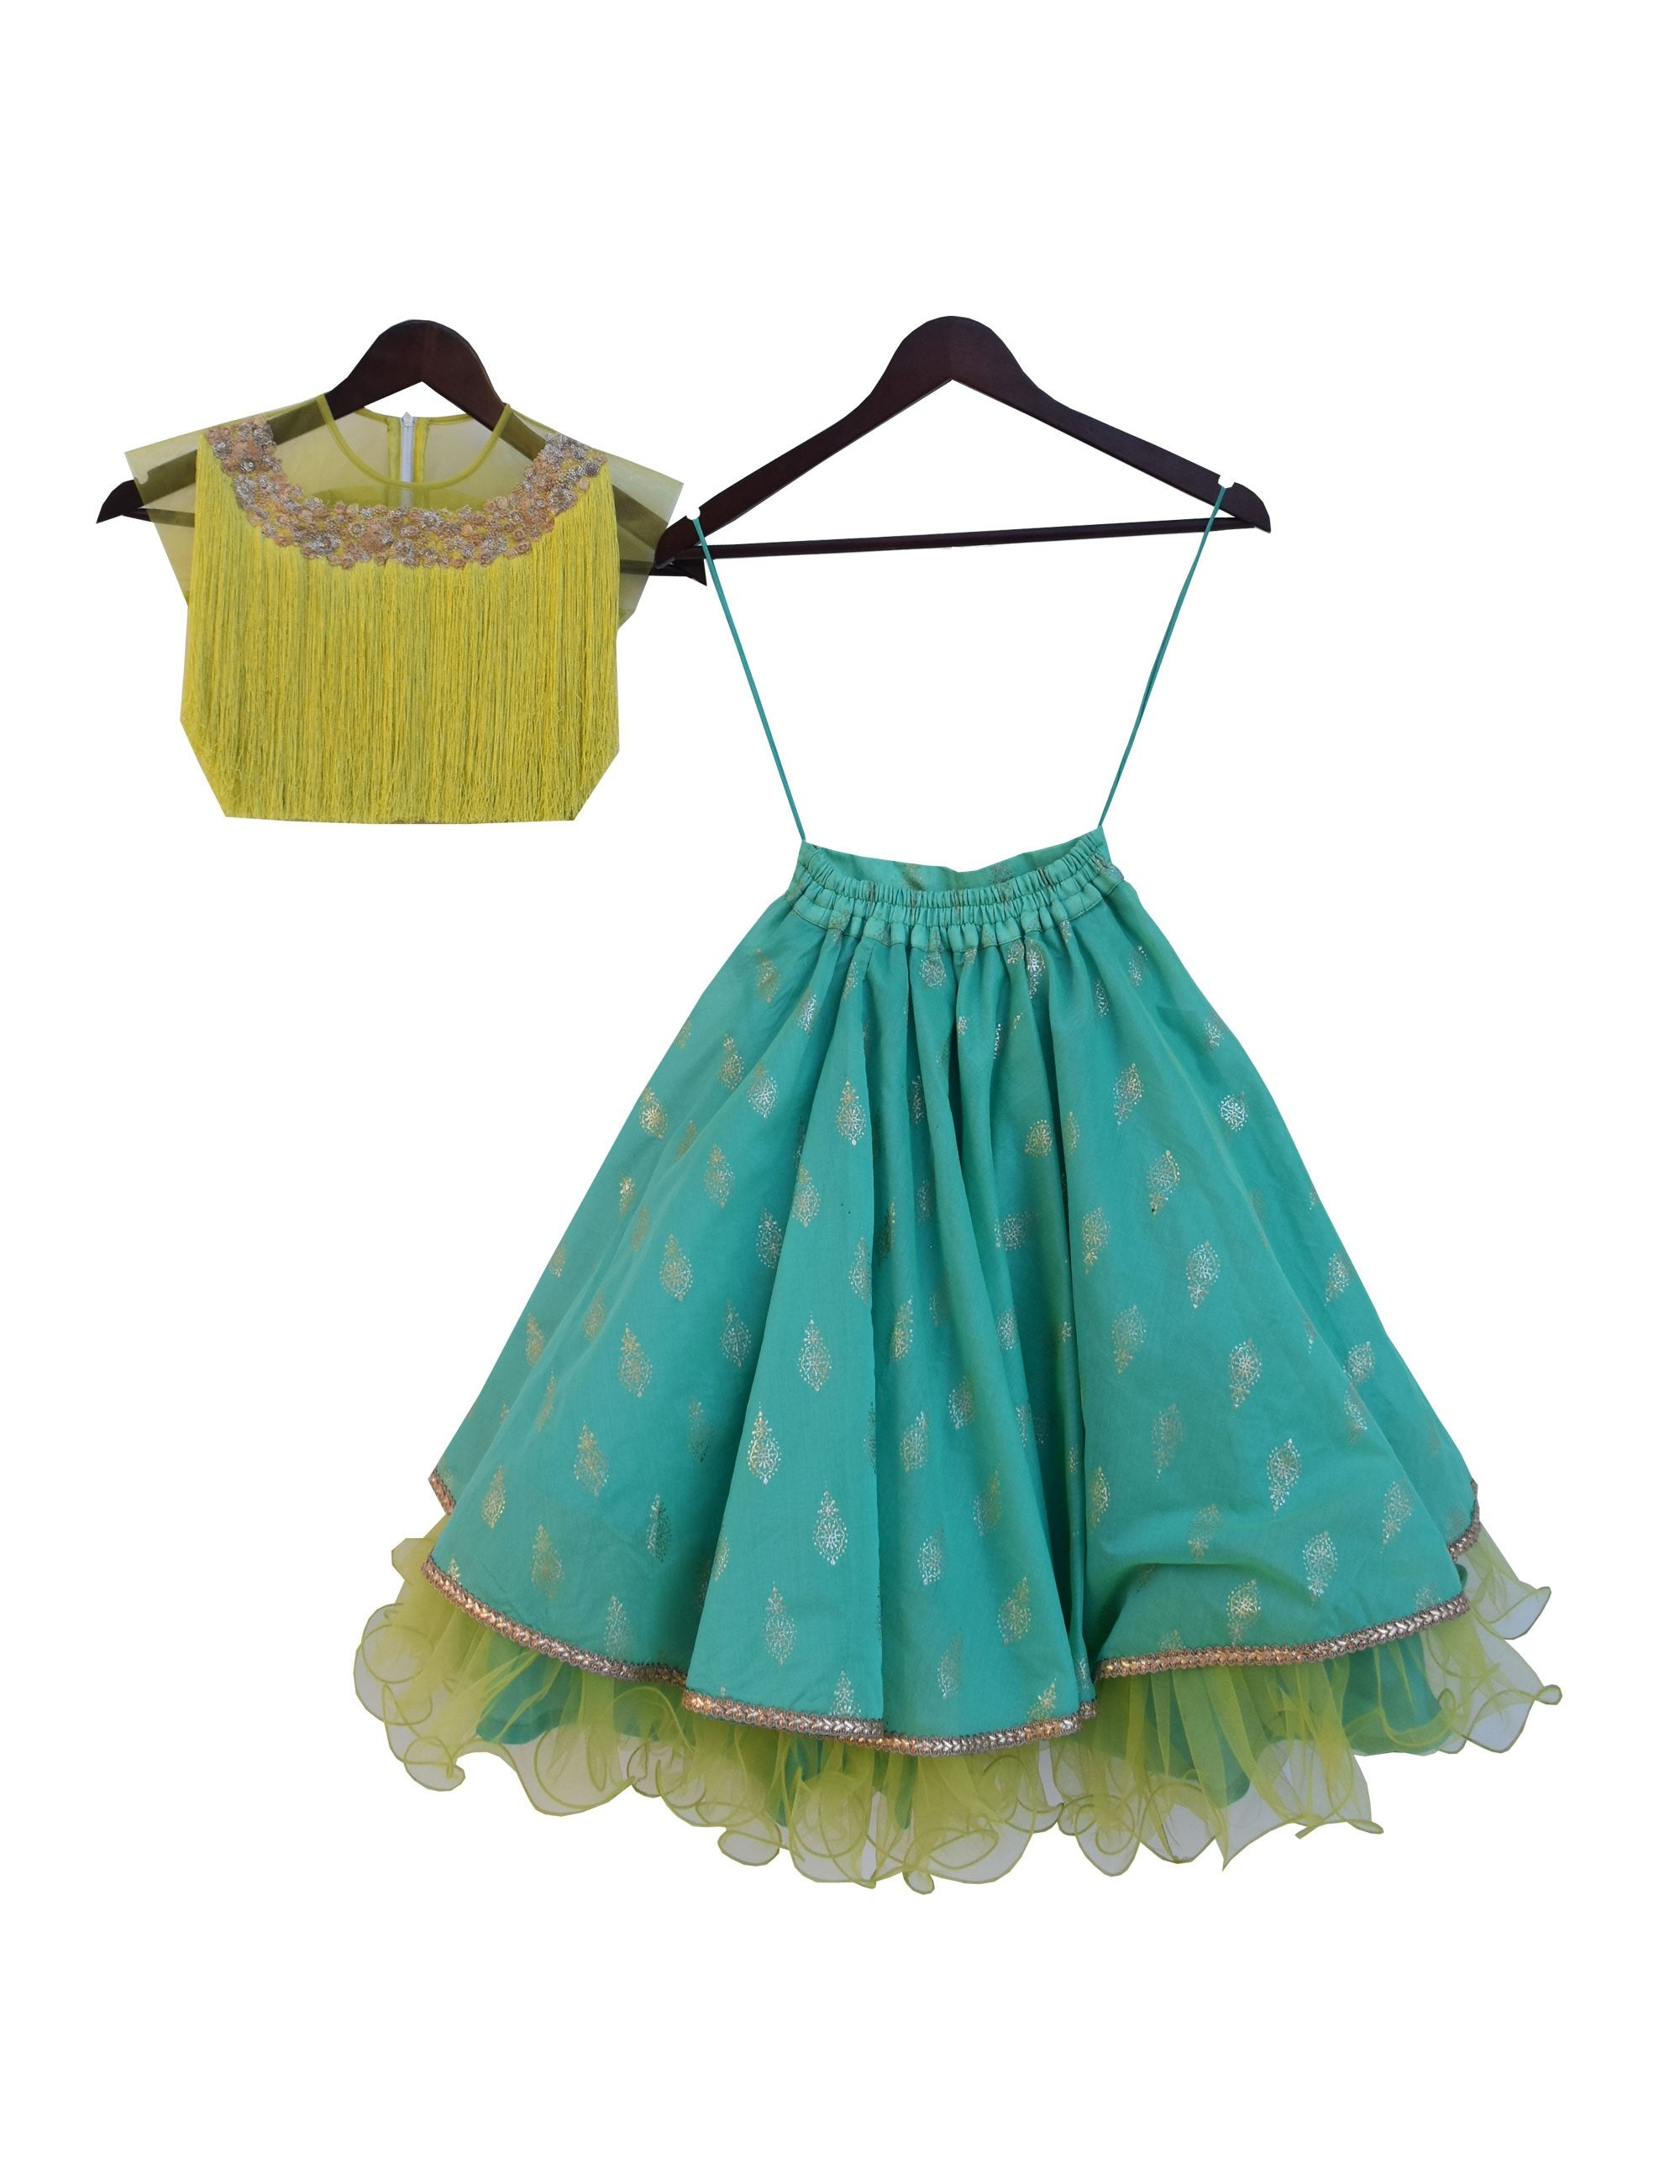 Tassel Lehenga in Green Colour for Girls